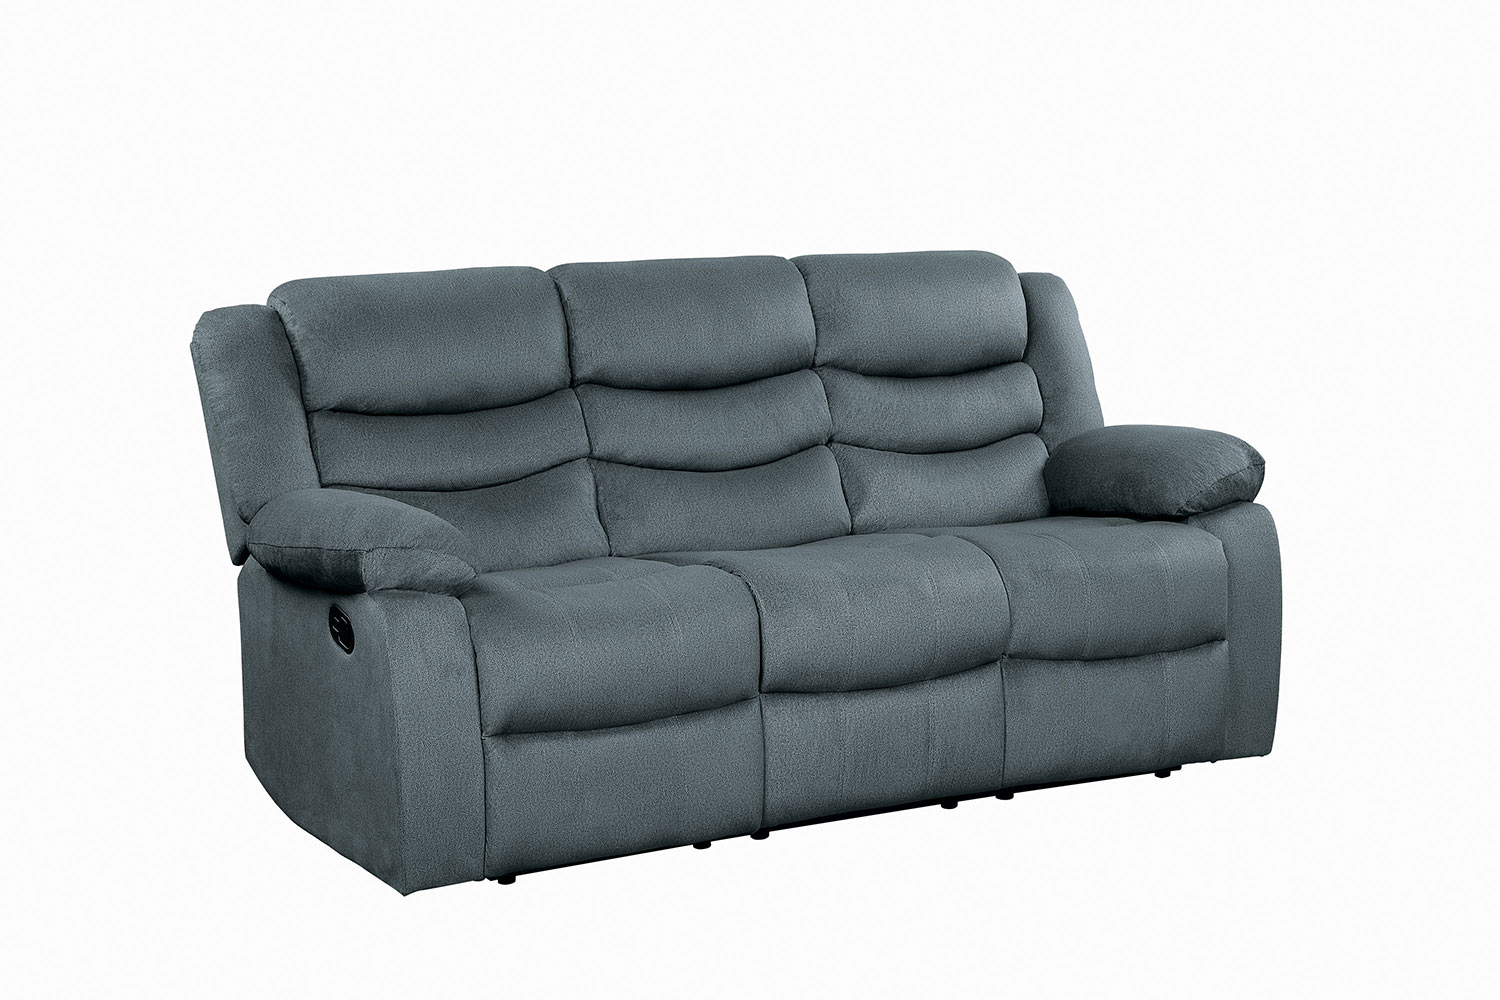 Homelegance Discus Double Reclining Sofa - Gray